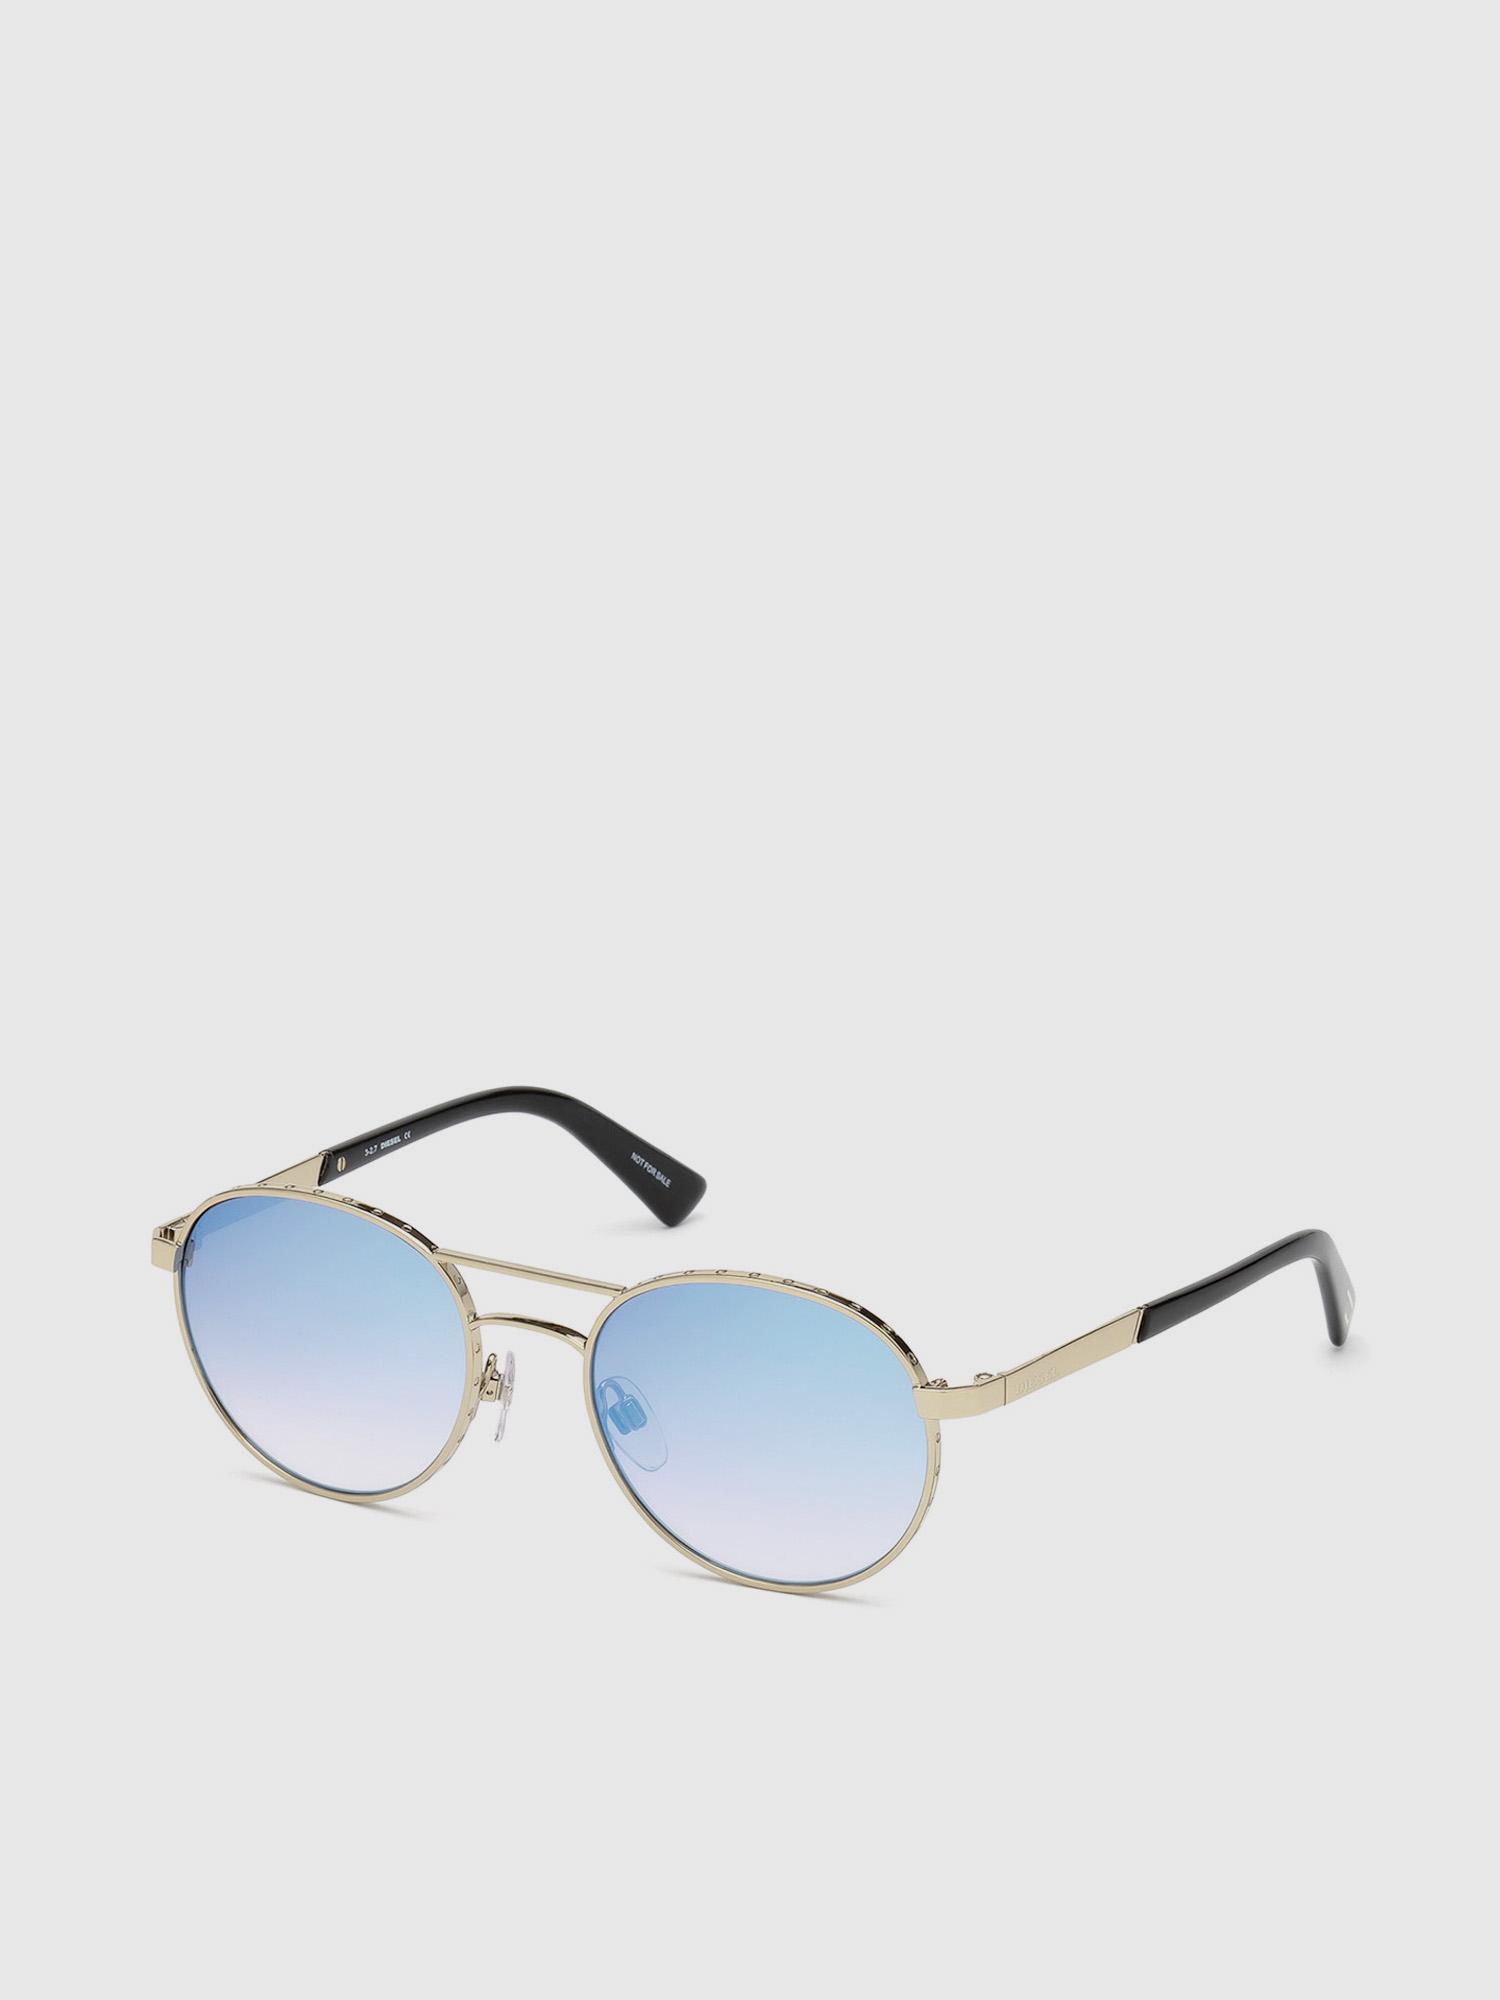 2923ffa3e3 Lyst - DIESEL Eyewear With Metal Front And Acetate Temple in Metallic